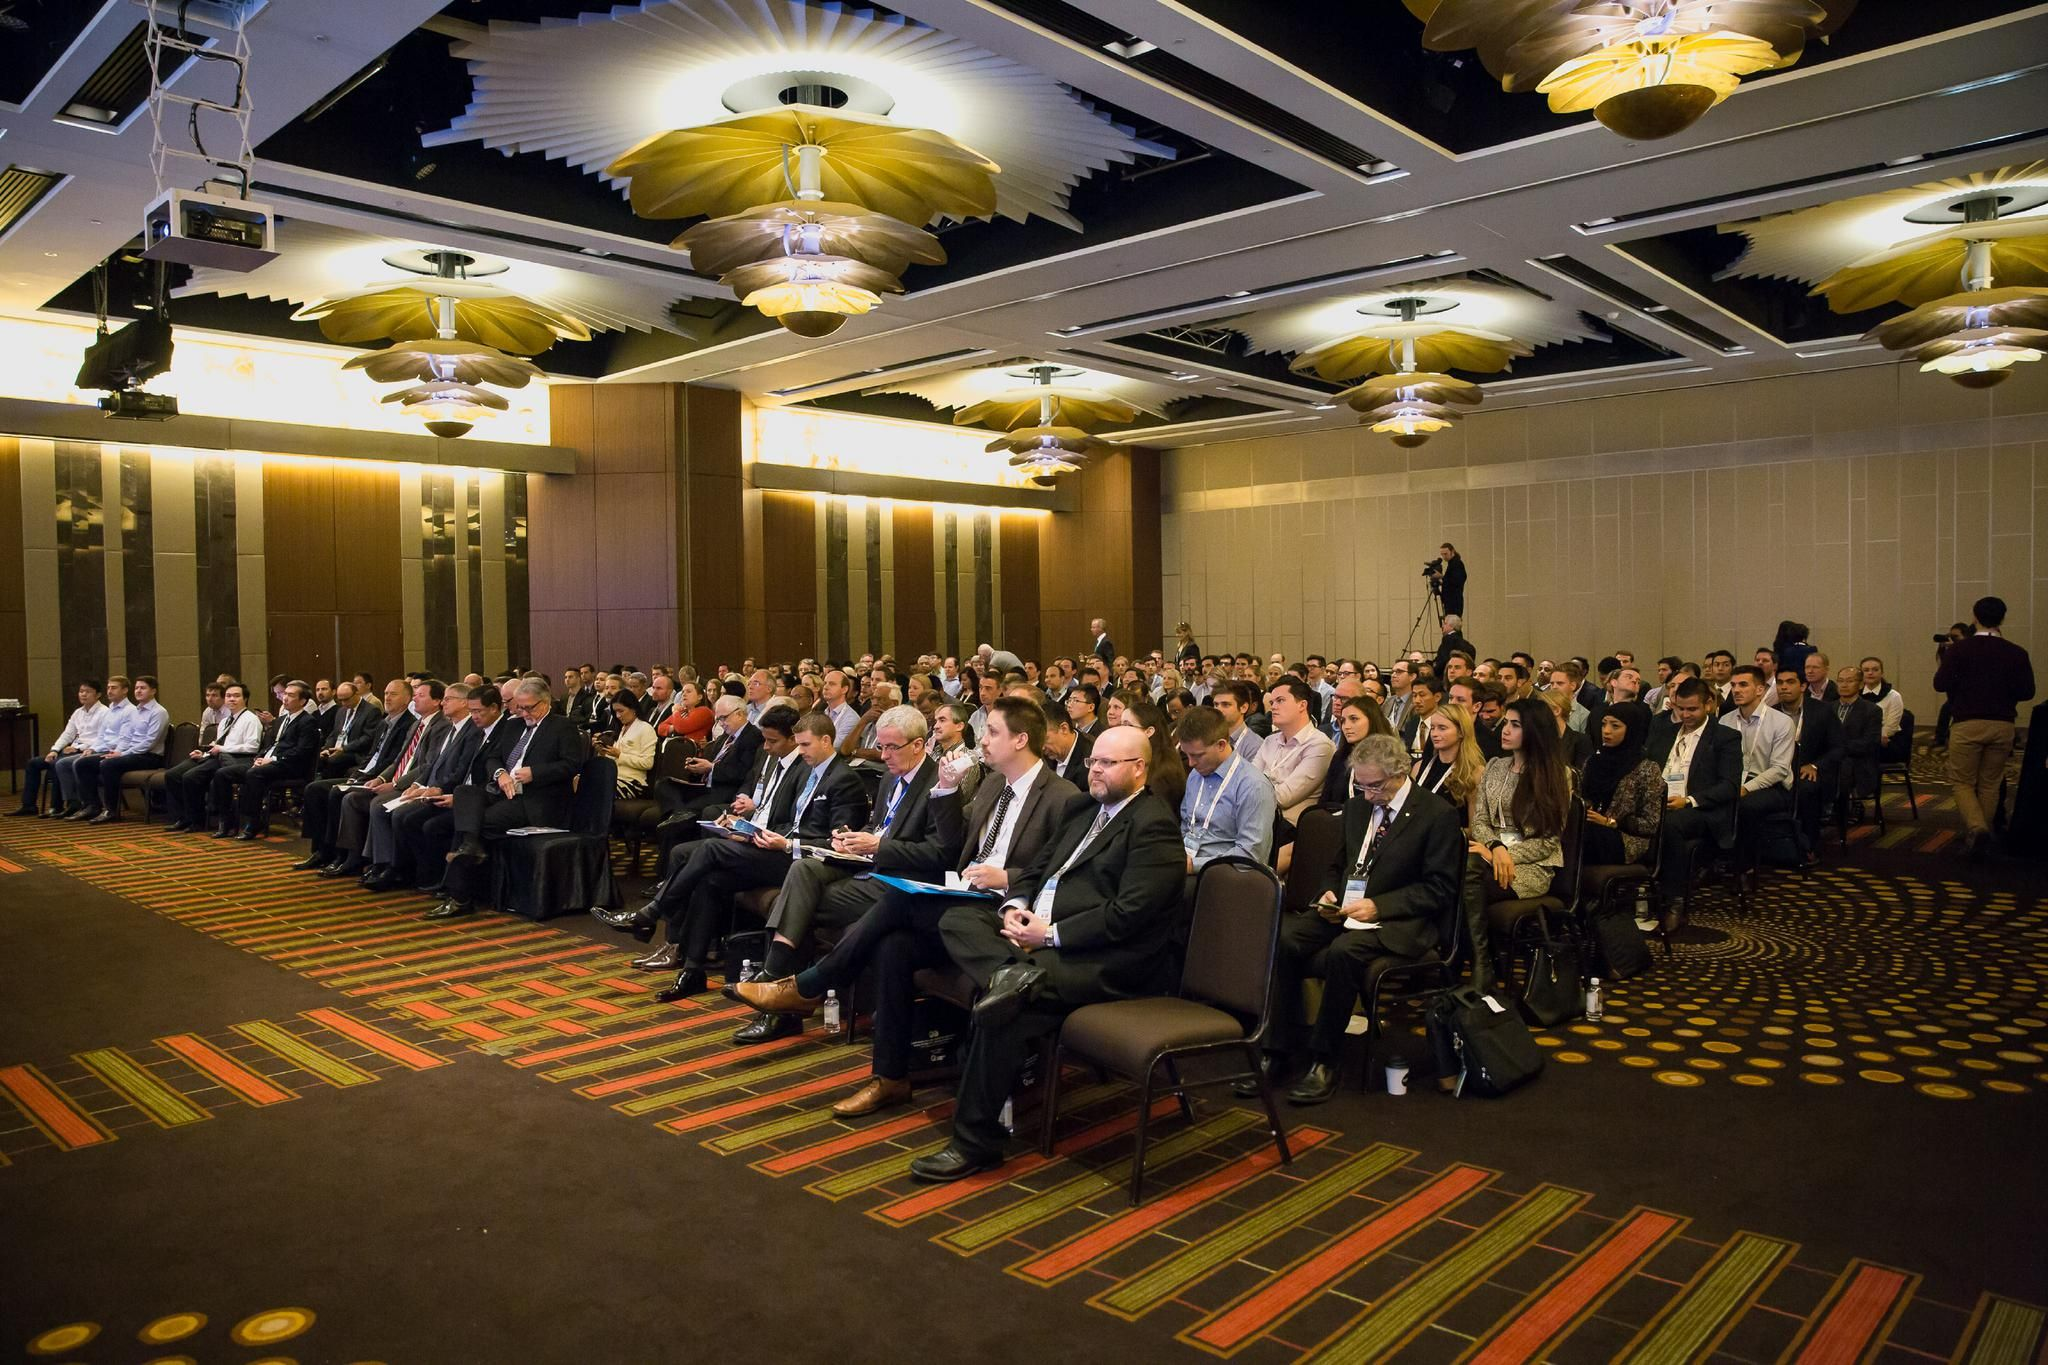 Attend a Popular Industry Event